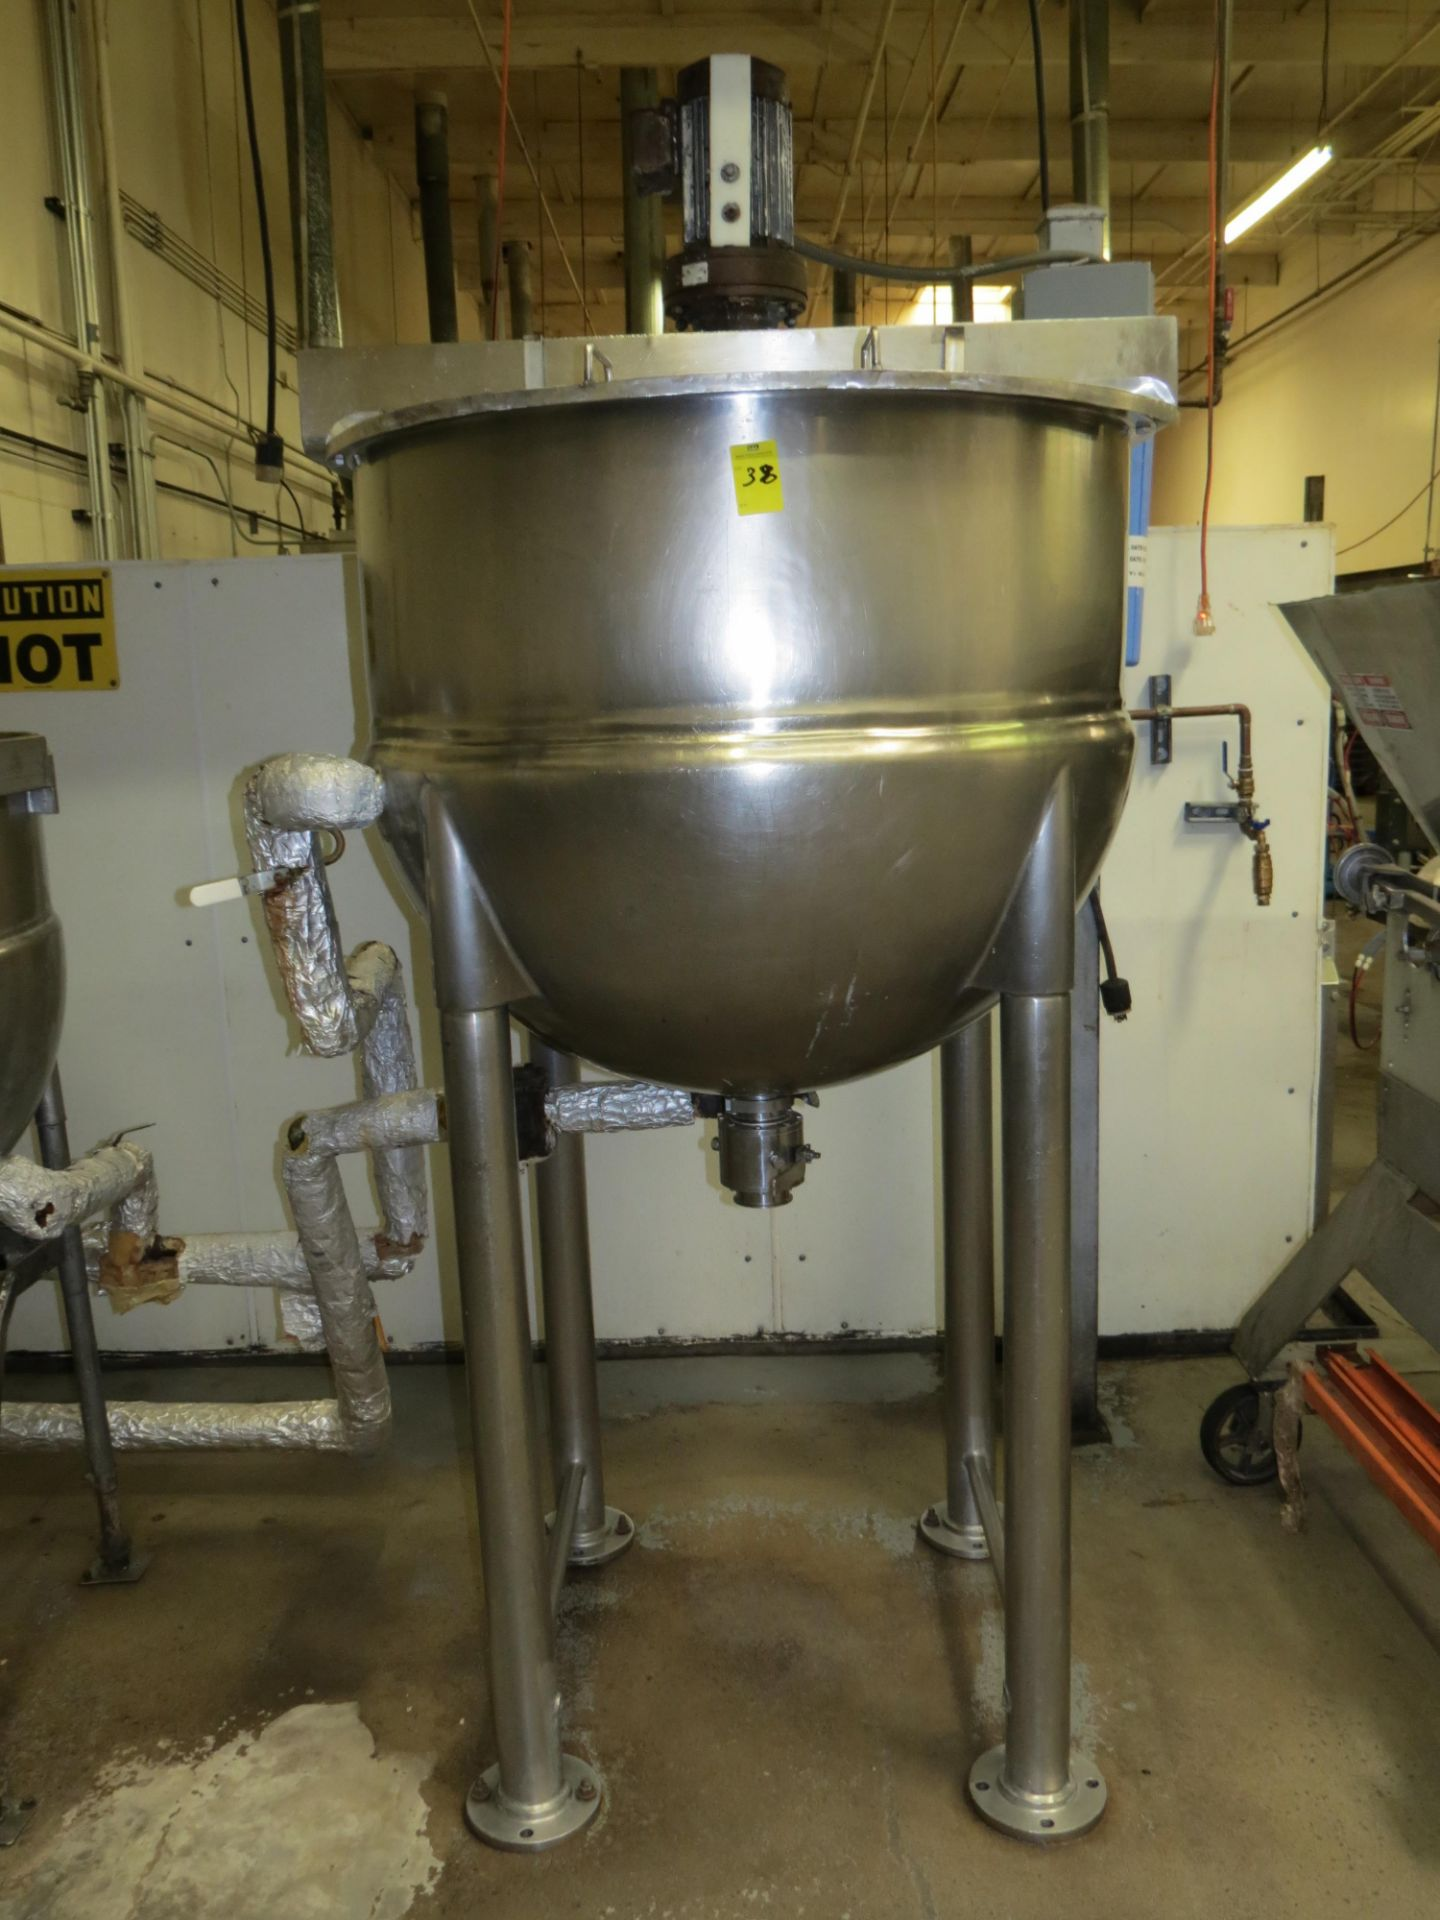 Lot 38 - 1997 LEE INDUSTRIES STAINLESS STEEL 125 GALLON STEAM KETTLE WITH AGITATOR, MDL: 150D7S , SN: C54354